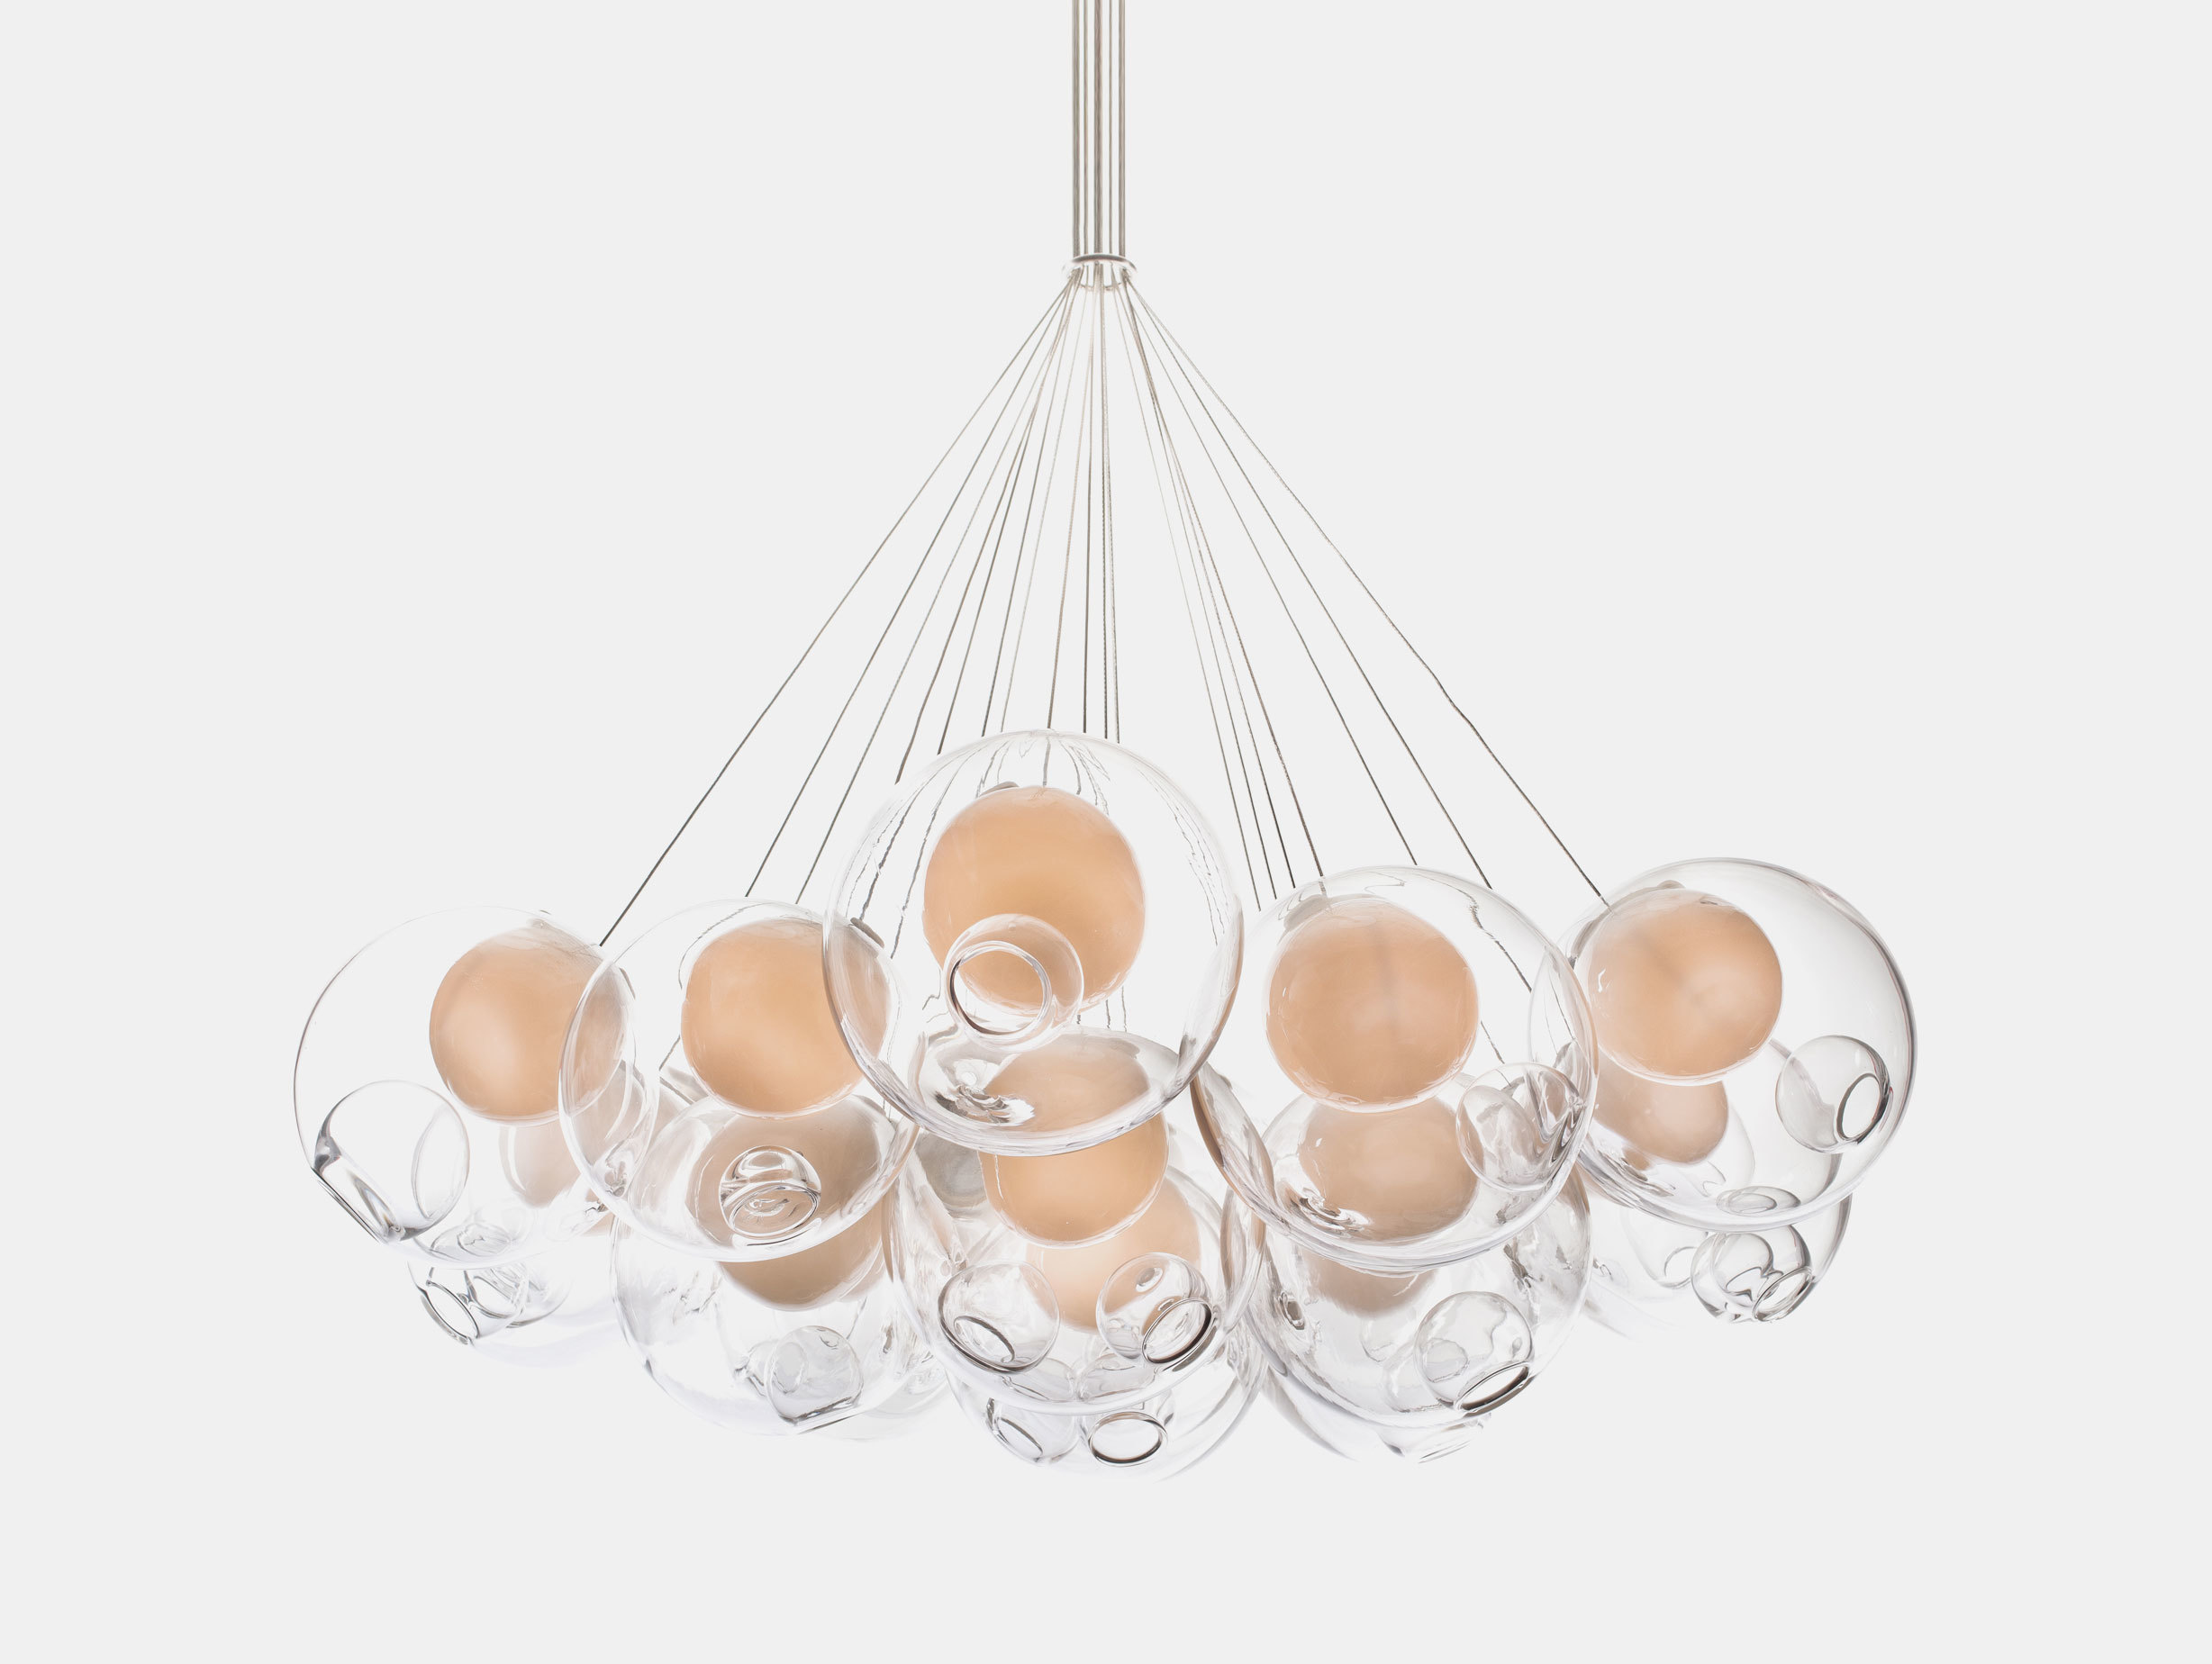 Bocci 28 Series Cluster Pendant Light Omer Arbel